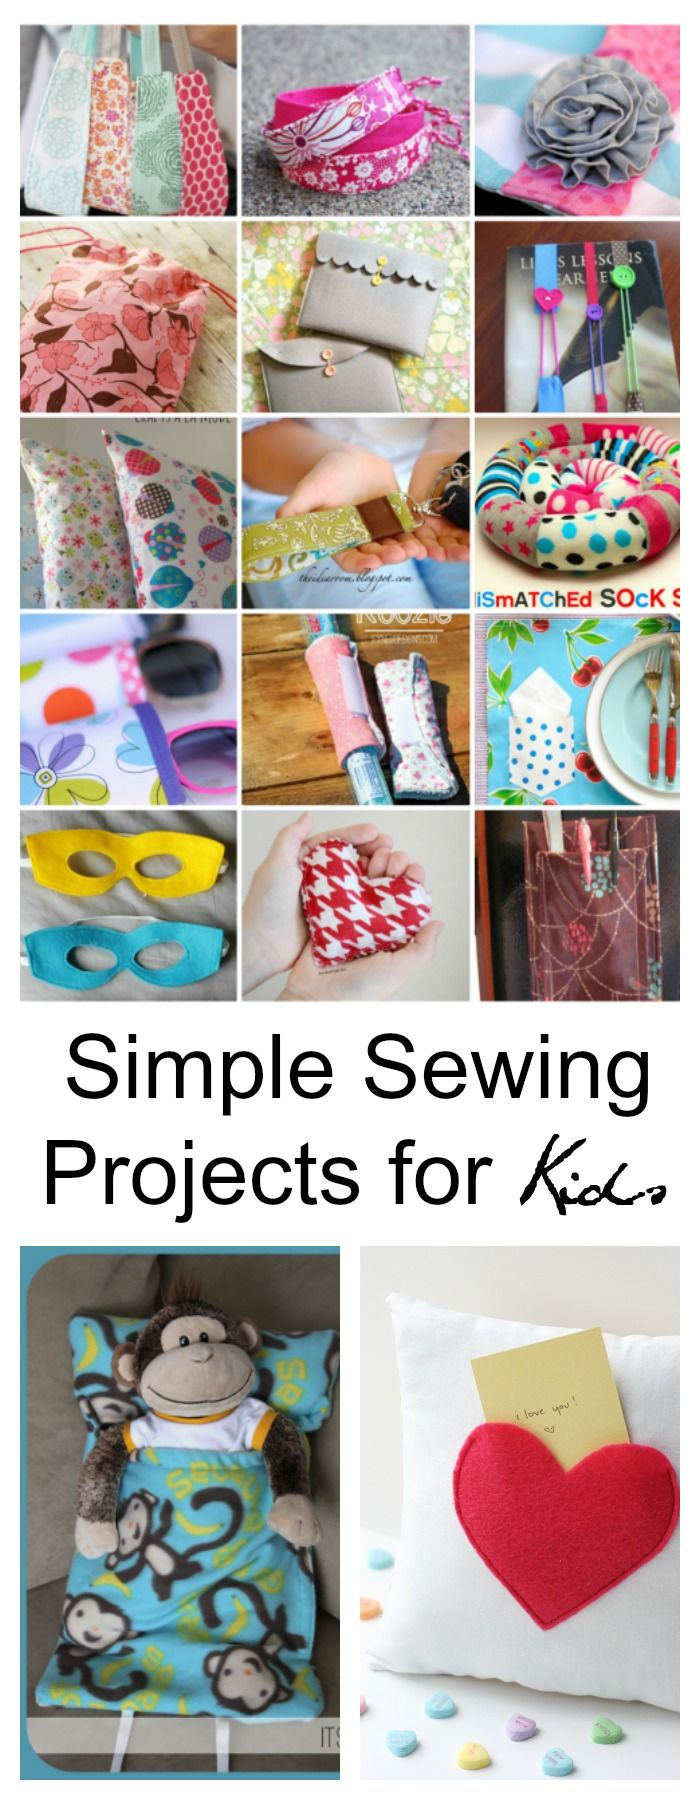 With these Simple Sewing Projects for Kids you can choose a project a week and by the end of the summer your kids will have lots of handmade gifts to give.